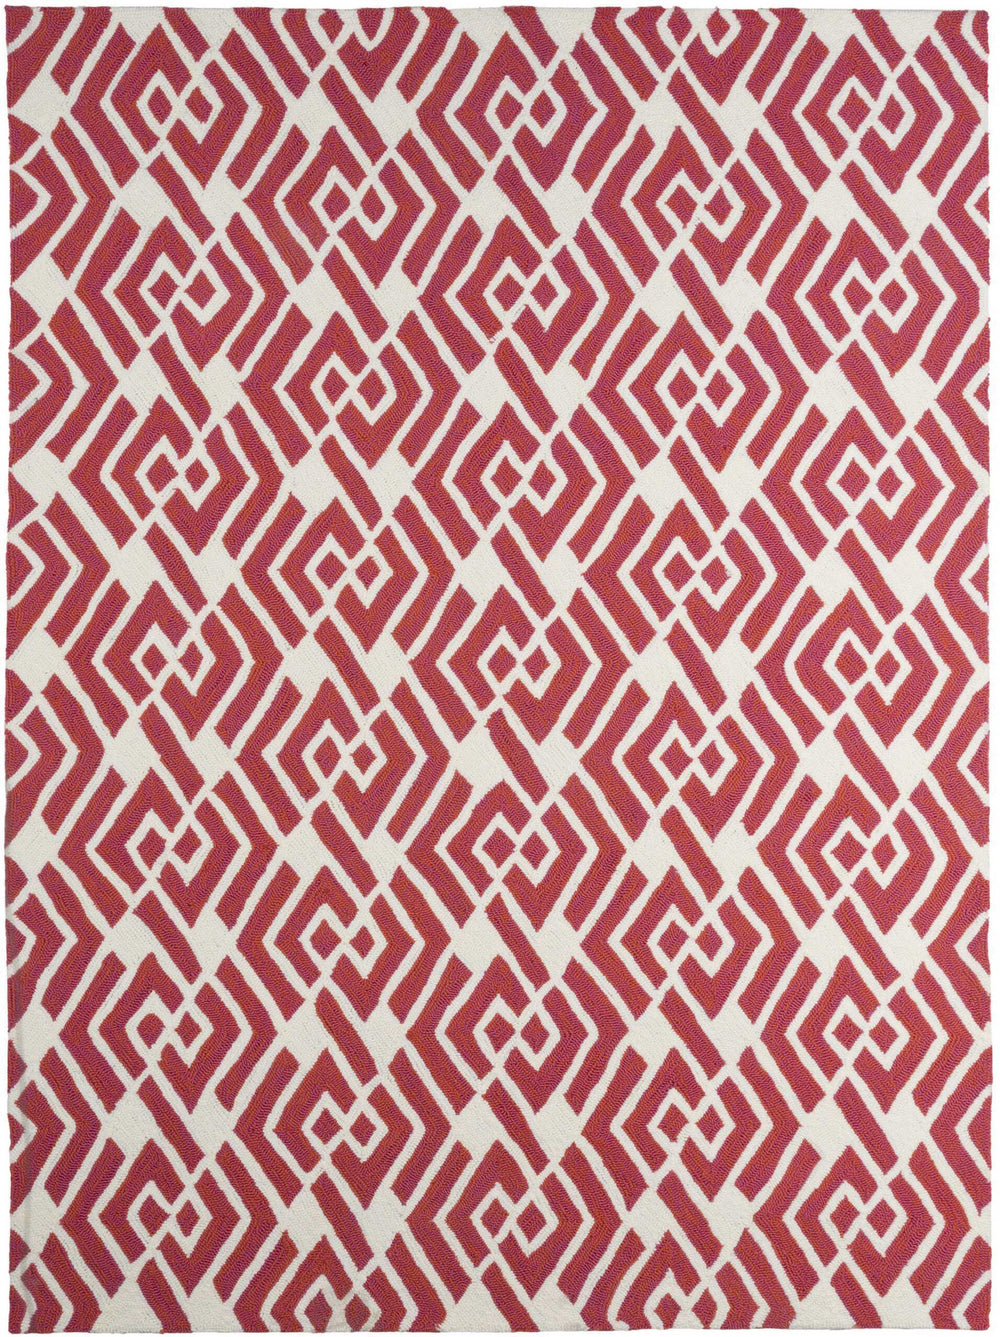 Amer Rugs Piazza PAZ-49 Area Rug